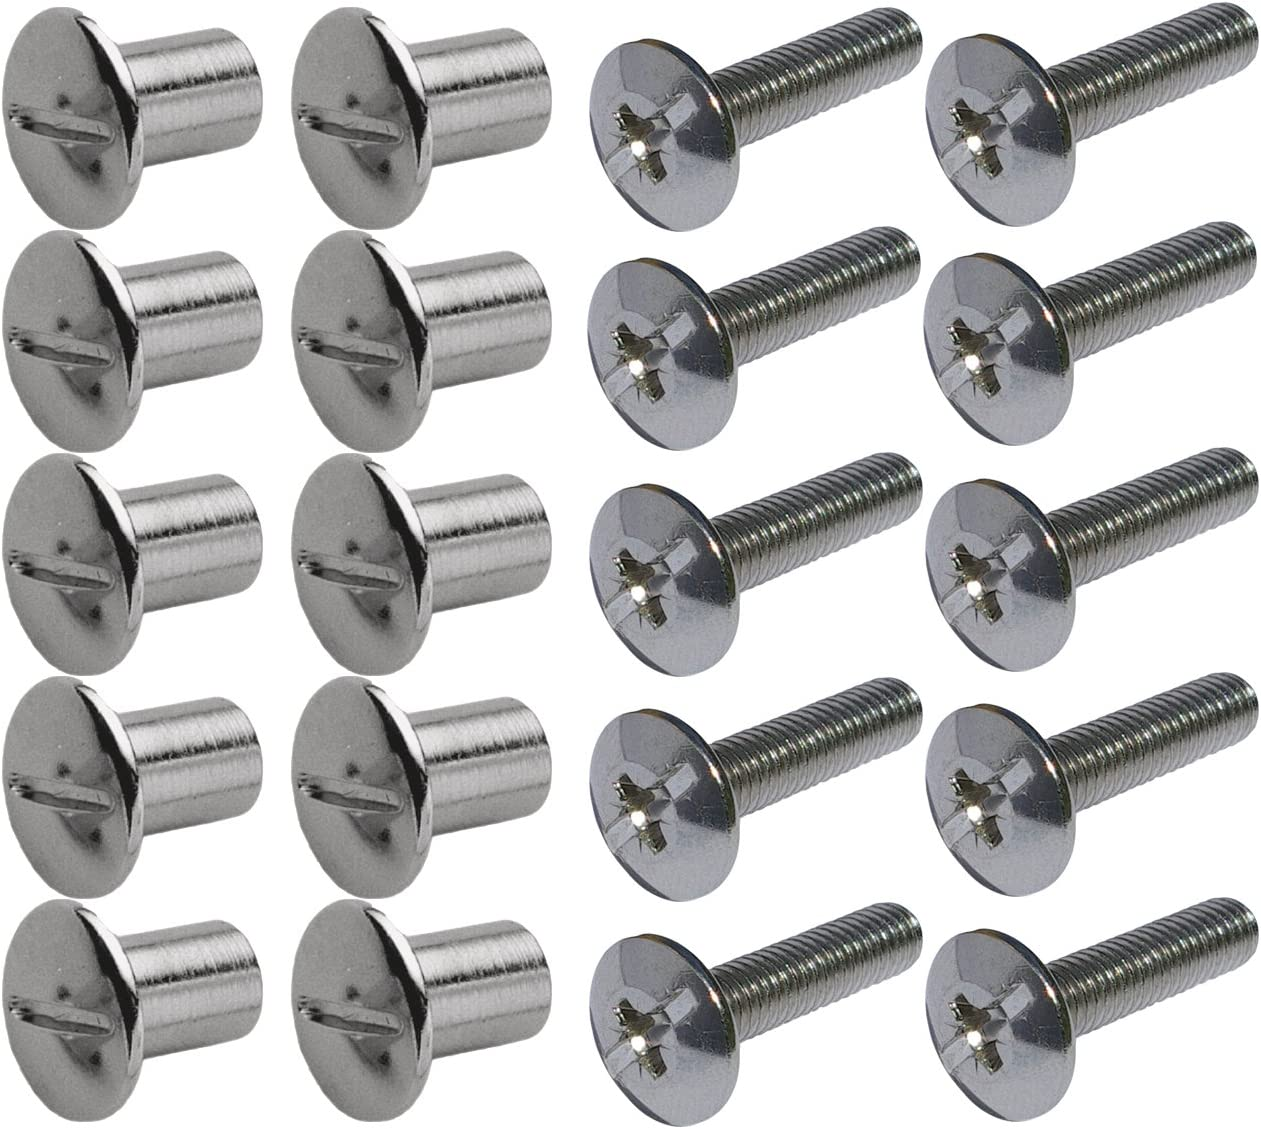 Secotec VAS150/Connecting Screw /Zinc Nickel-Plated Pack of 10 Phillips Wood Thickness 8/mm Length M6 /40/ 30/